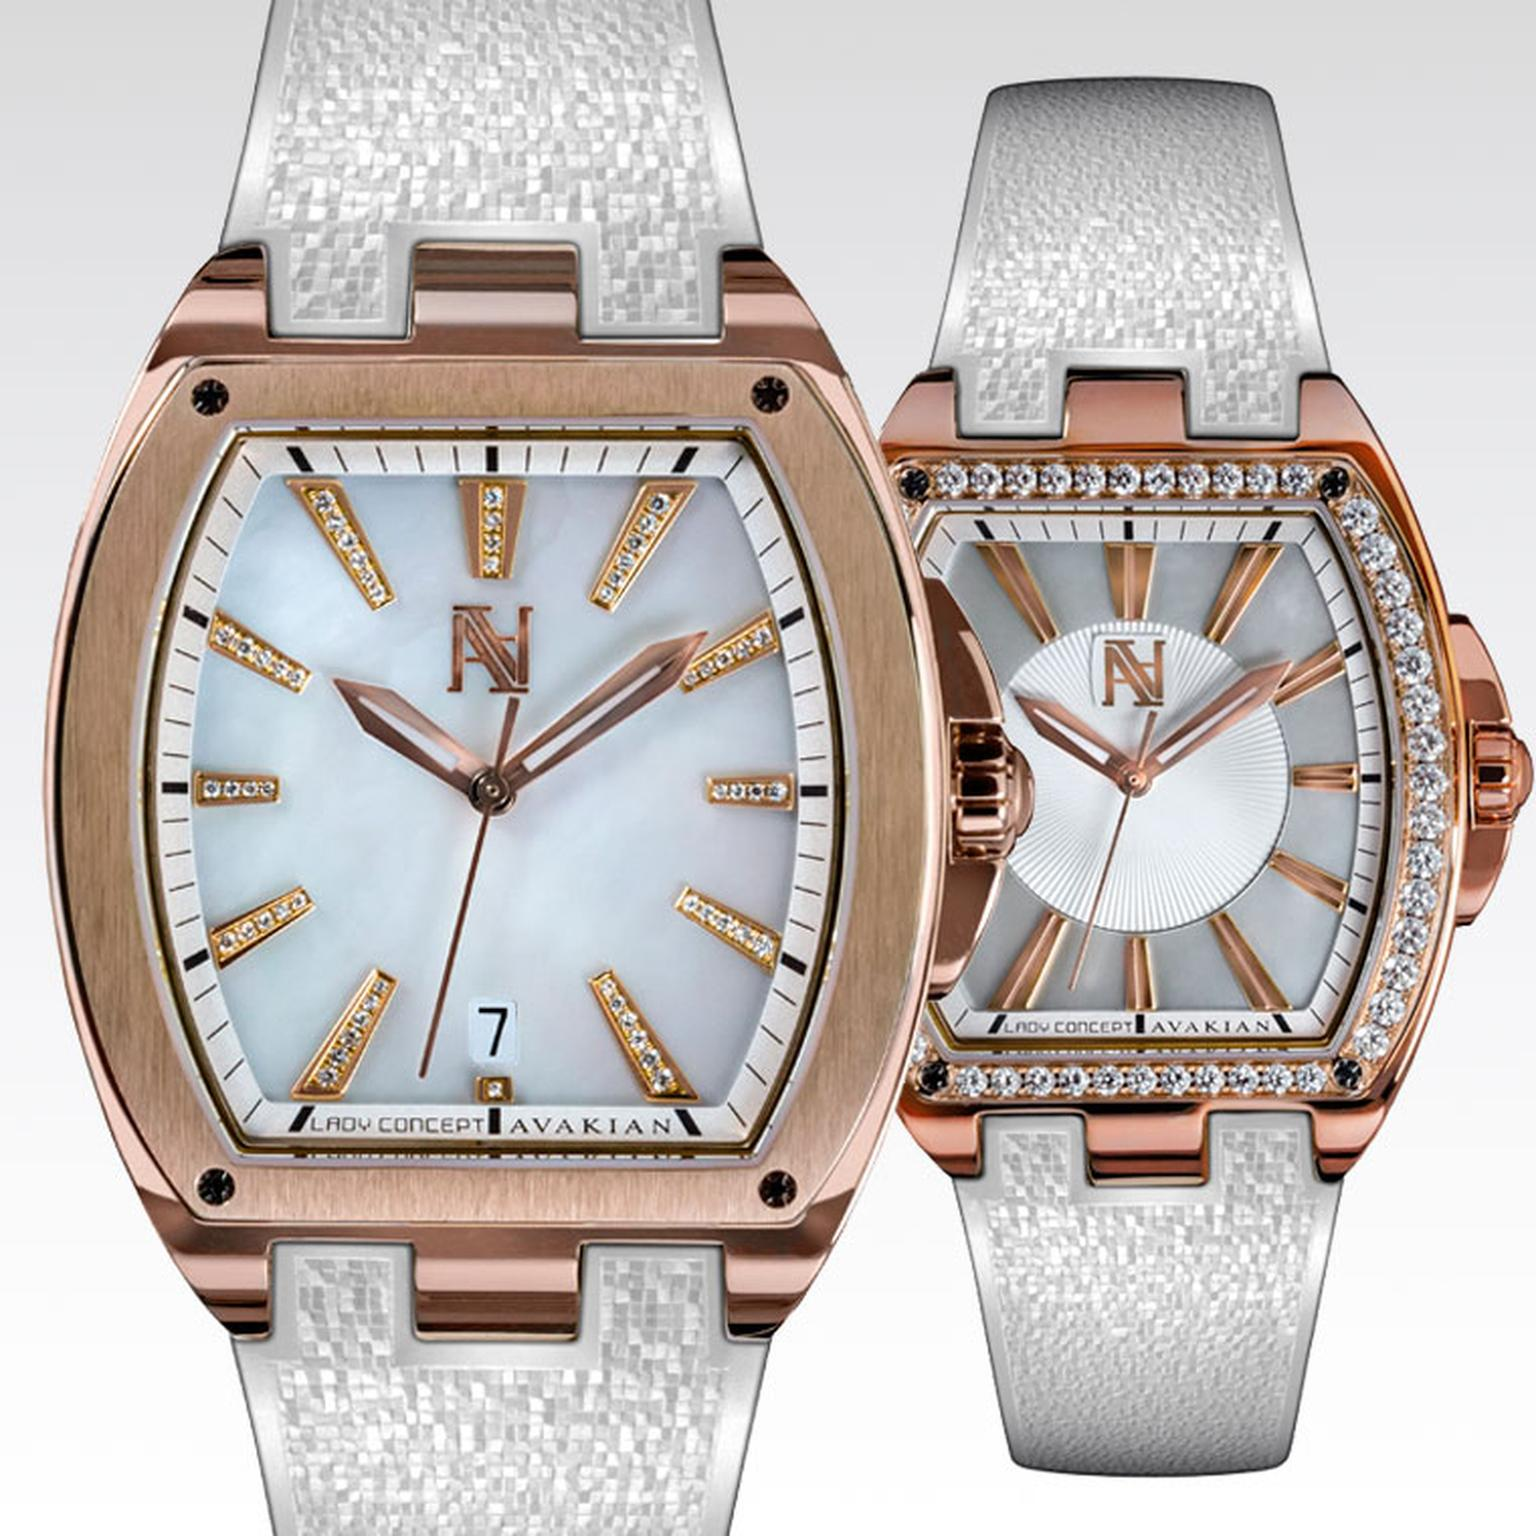 Avakian Lady Concept watch with mother-of-pearl dial and diamonds